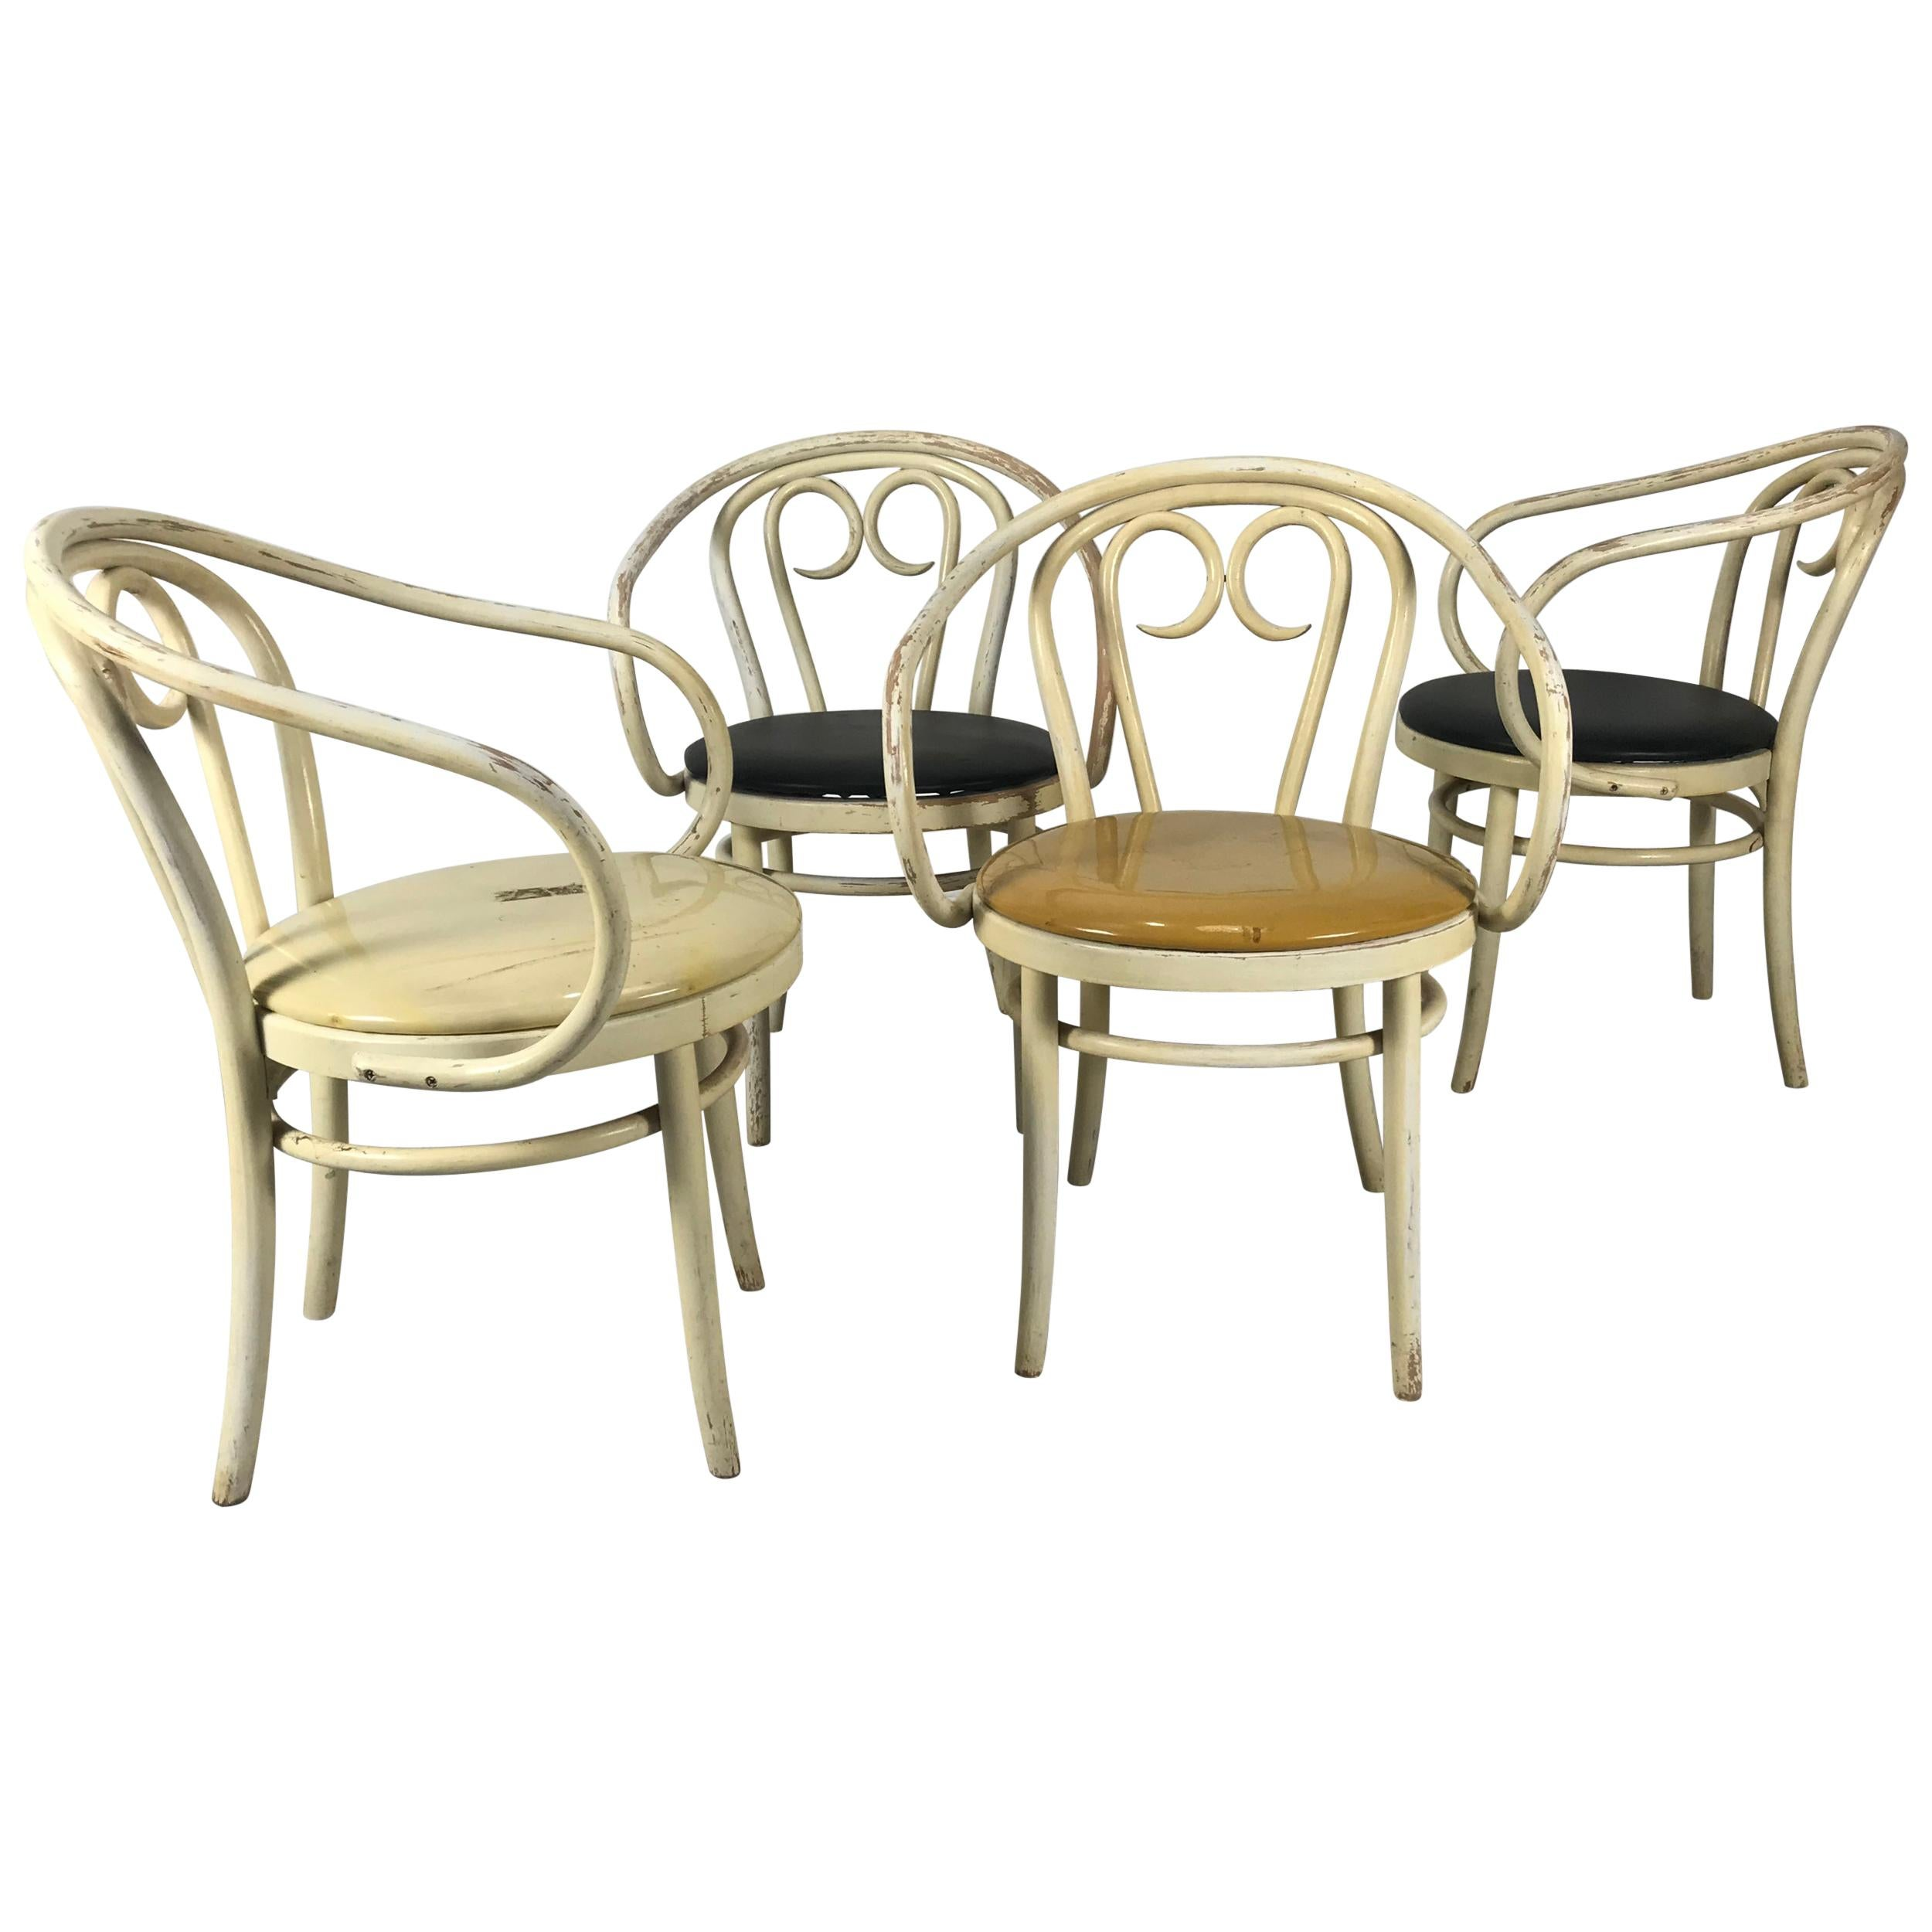 Most Unusual Set 4 of Modernist Bentwood Armchairs by Thonet